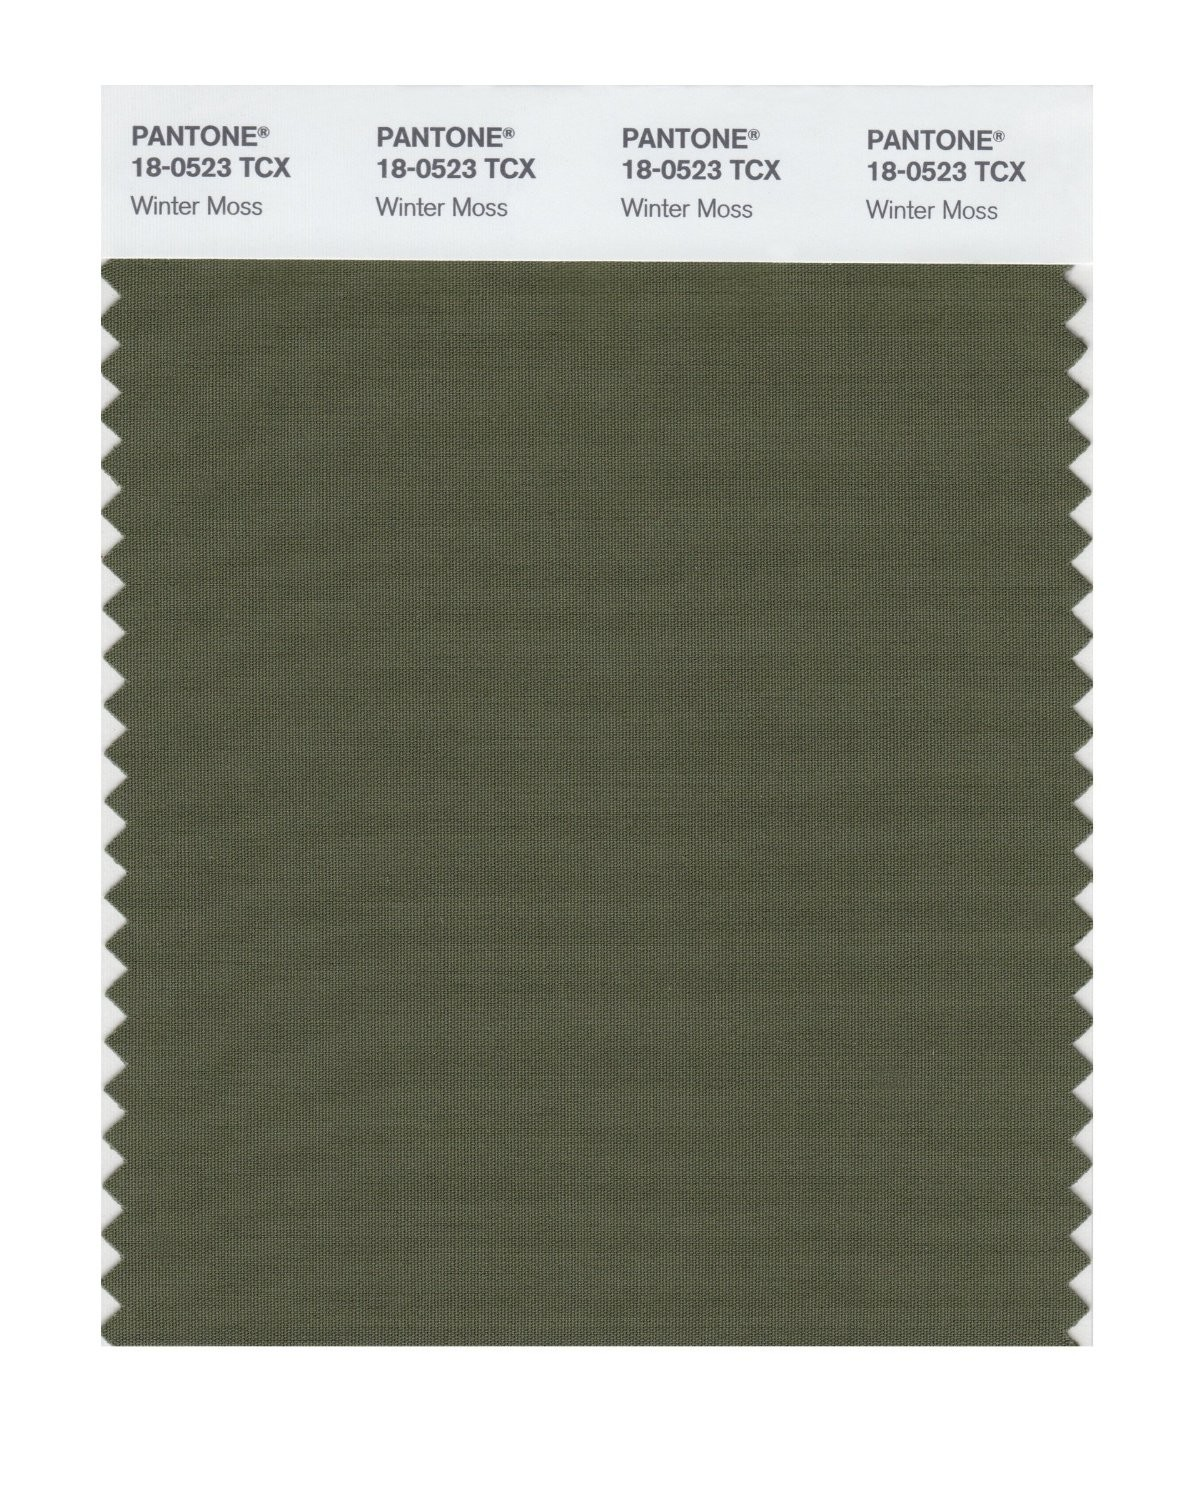 Pantone 18-0523 TCX Swatch Card Winter Moss